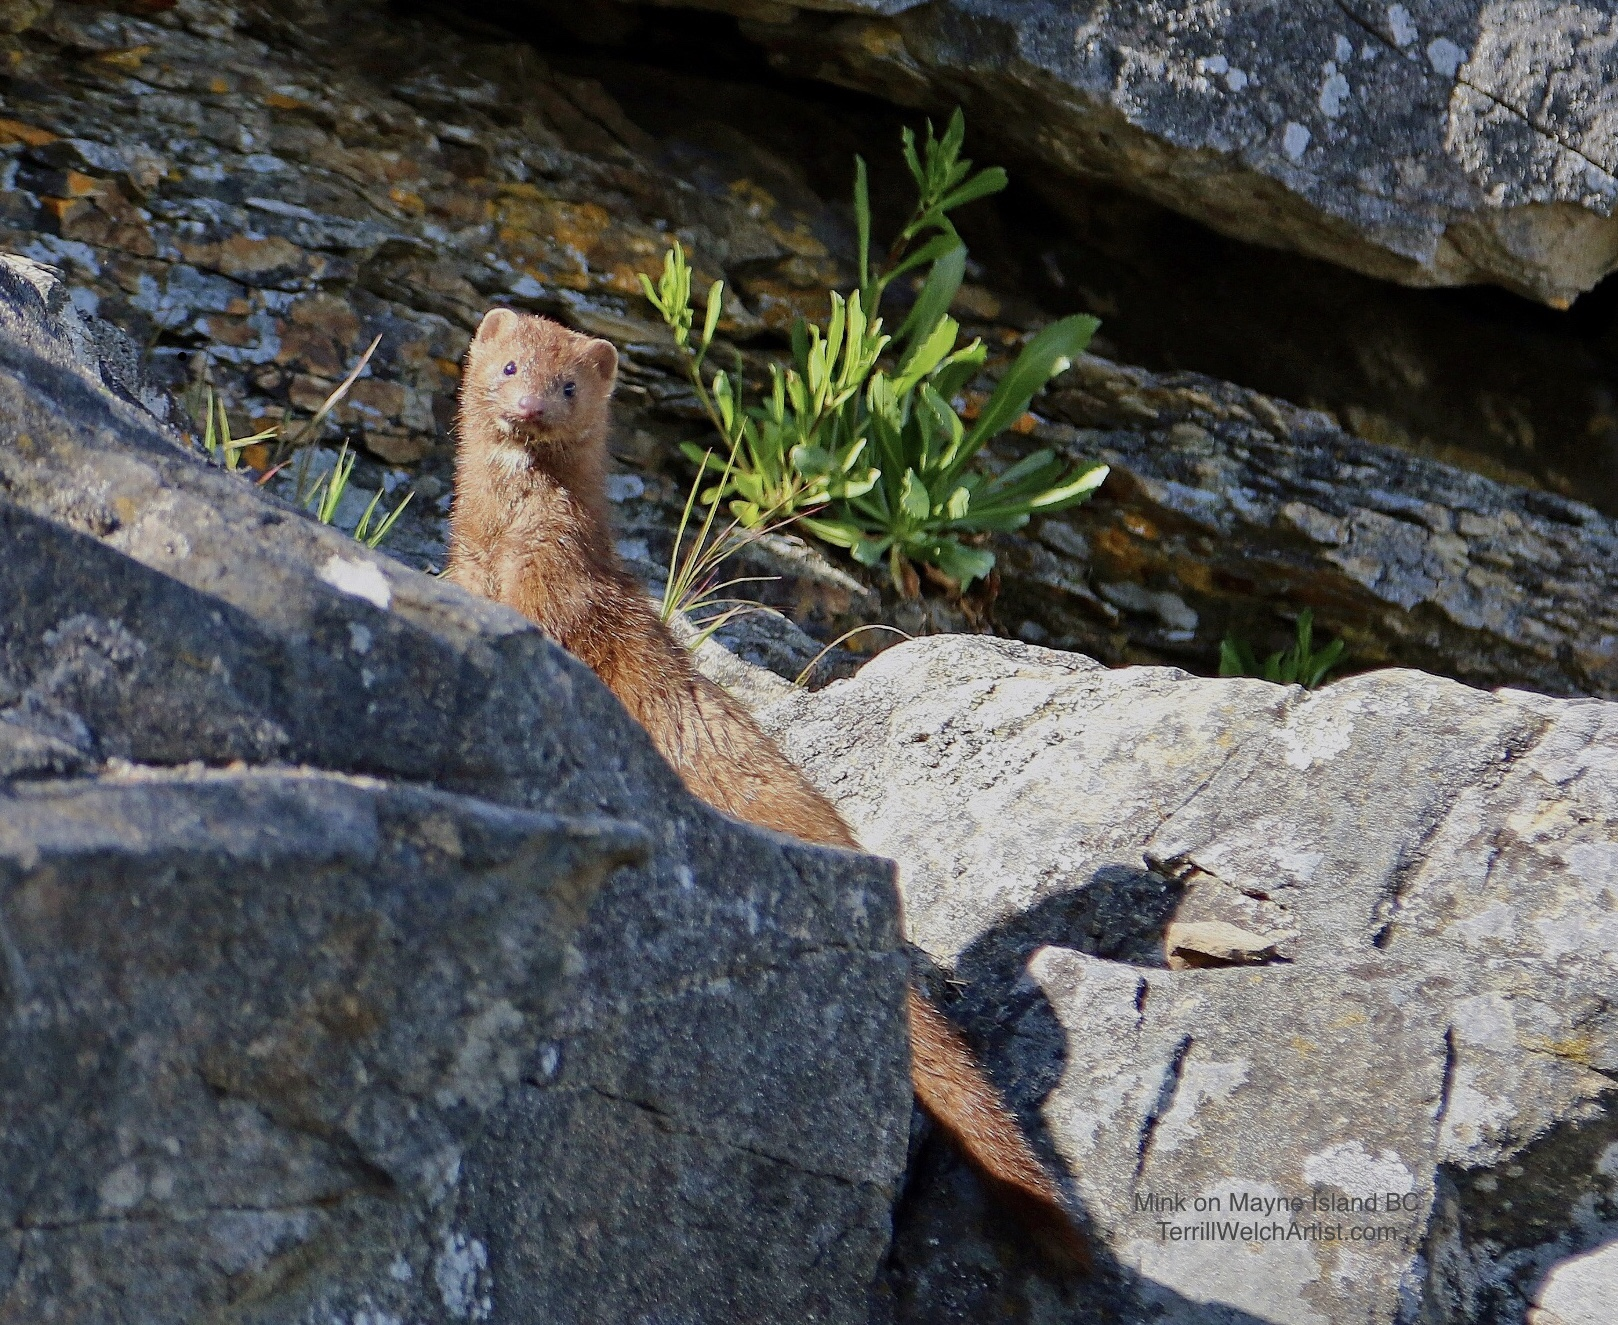 American Mink coming up between the sandstone rocks at Saint John Point on Mayne Island in British Columbia Canada.